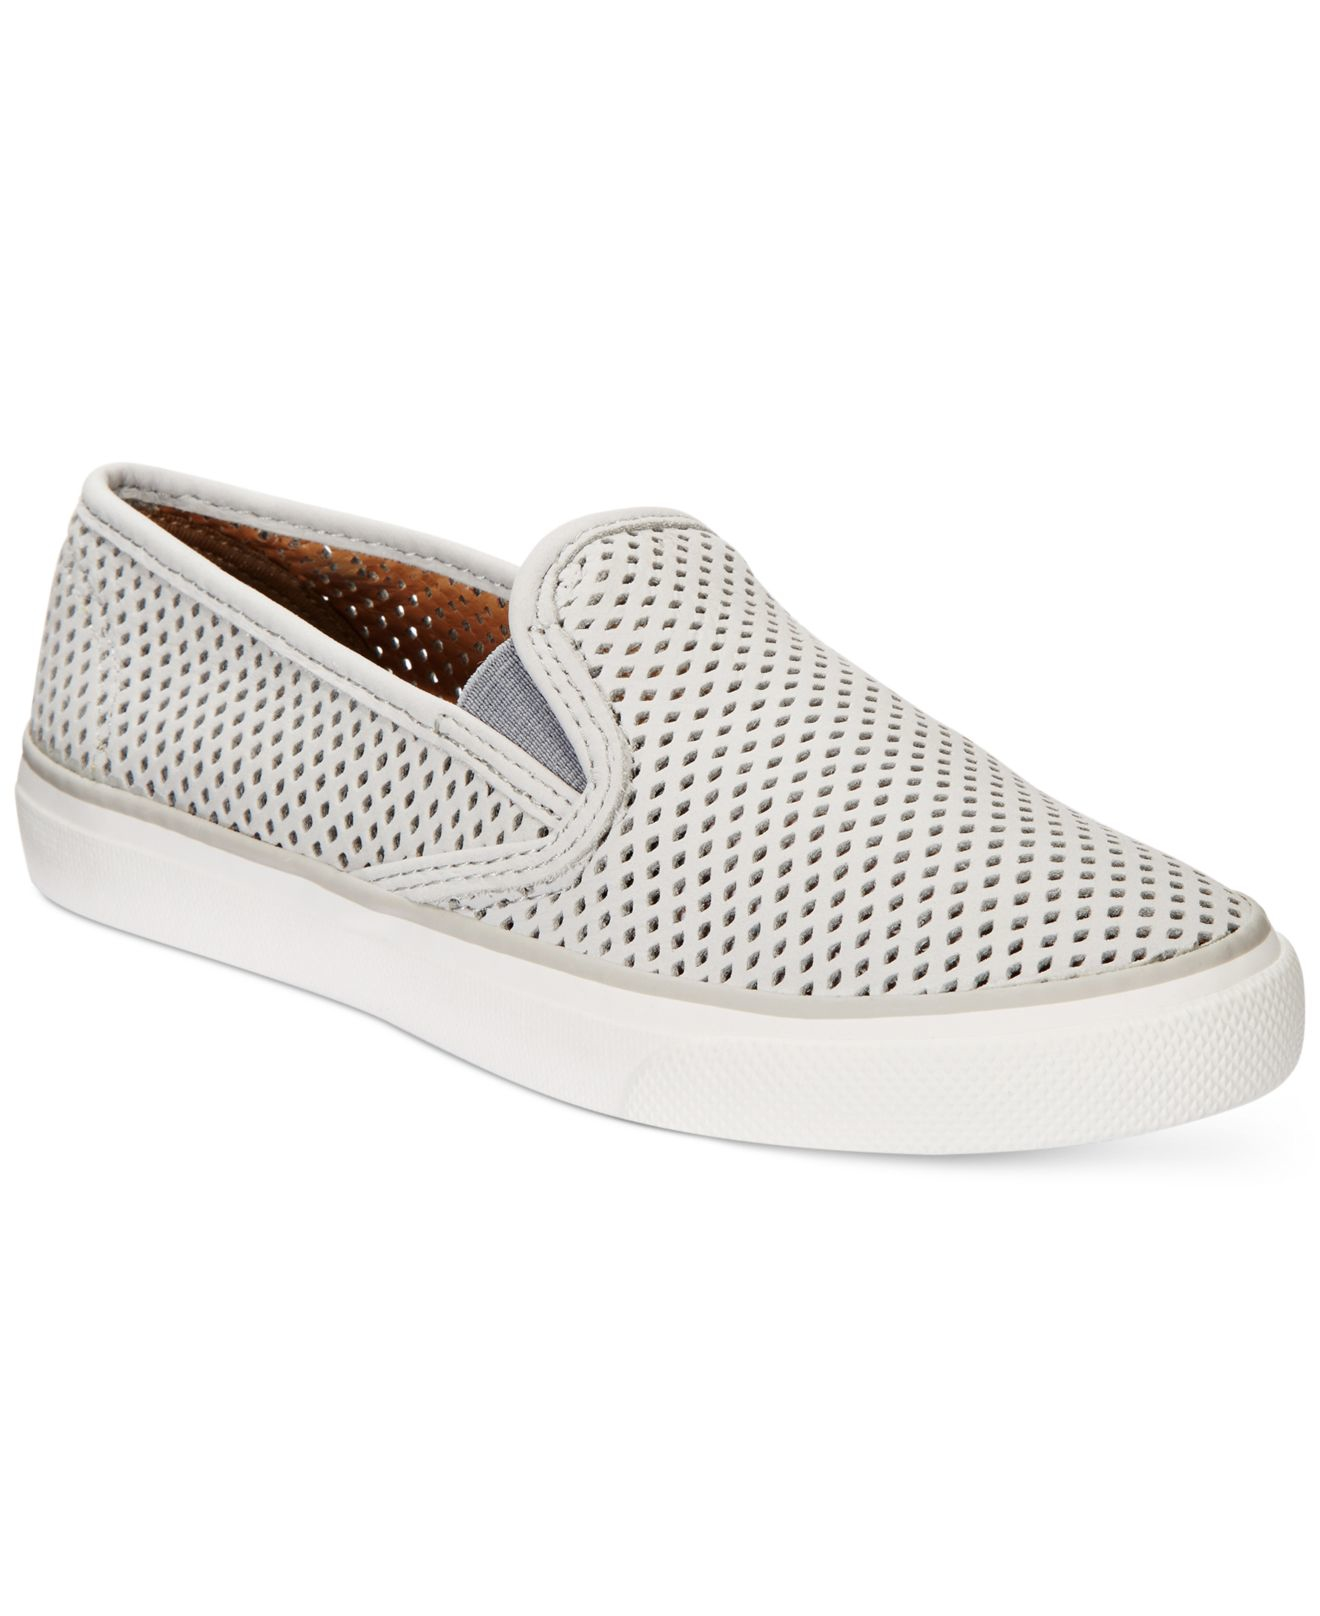 Sperry Womens Slip On Shoes